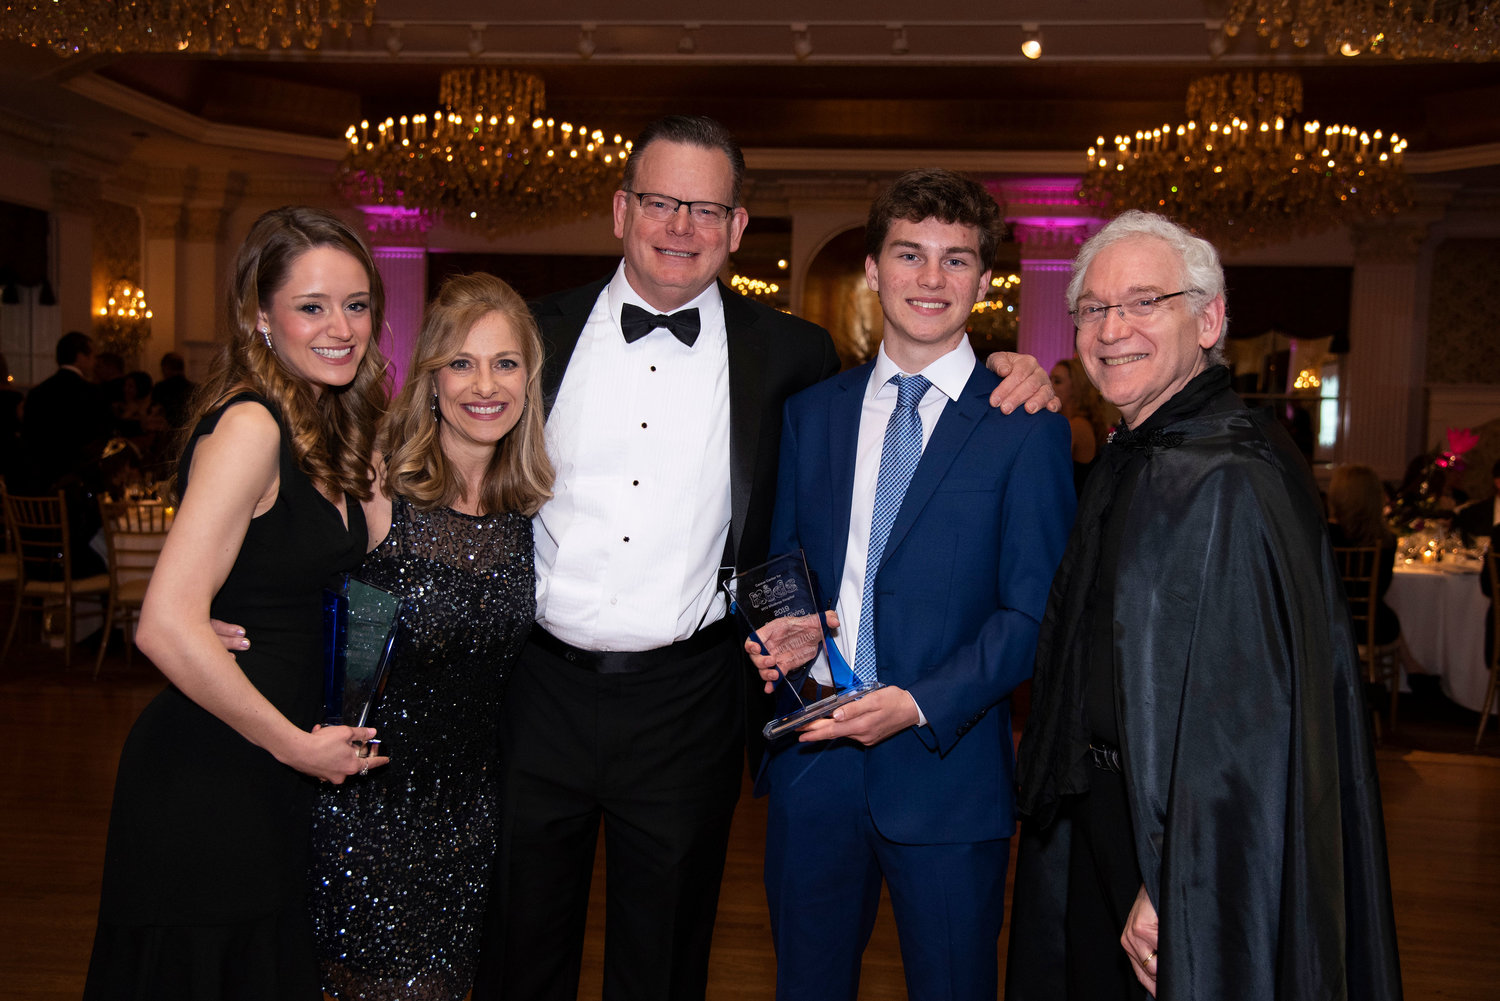 Brooke Williams, left, and her brother, Jack, second from right, were honored at the Cancer Center for Kids at New York University Winthrop Hospital's Black and White Ball. They were joined by their parents, Donna-Marie Korth-Williams and Ken Williams, and Dr. Mark Weinblatt, far right, chief of the Pediatric Hematology/Oncology at NYU Winthrop Hospital and the director of the Cancer Center for Kids.